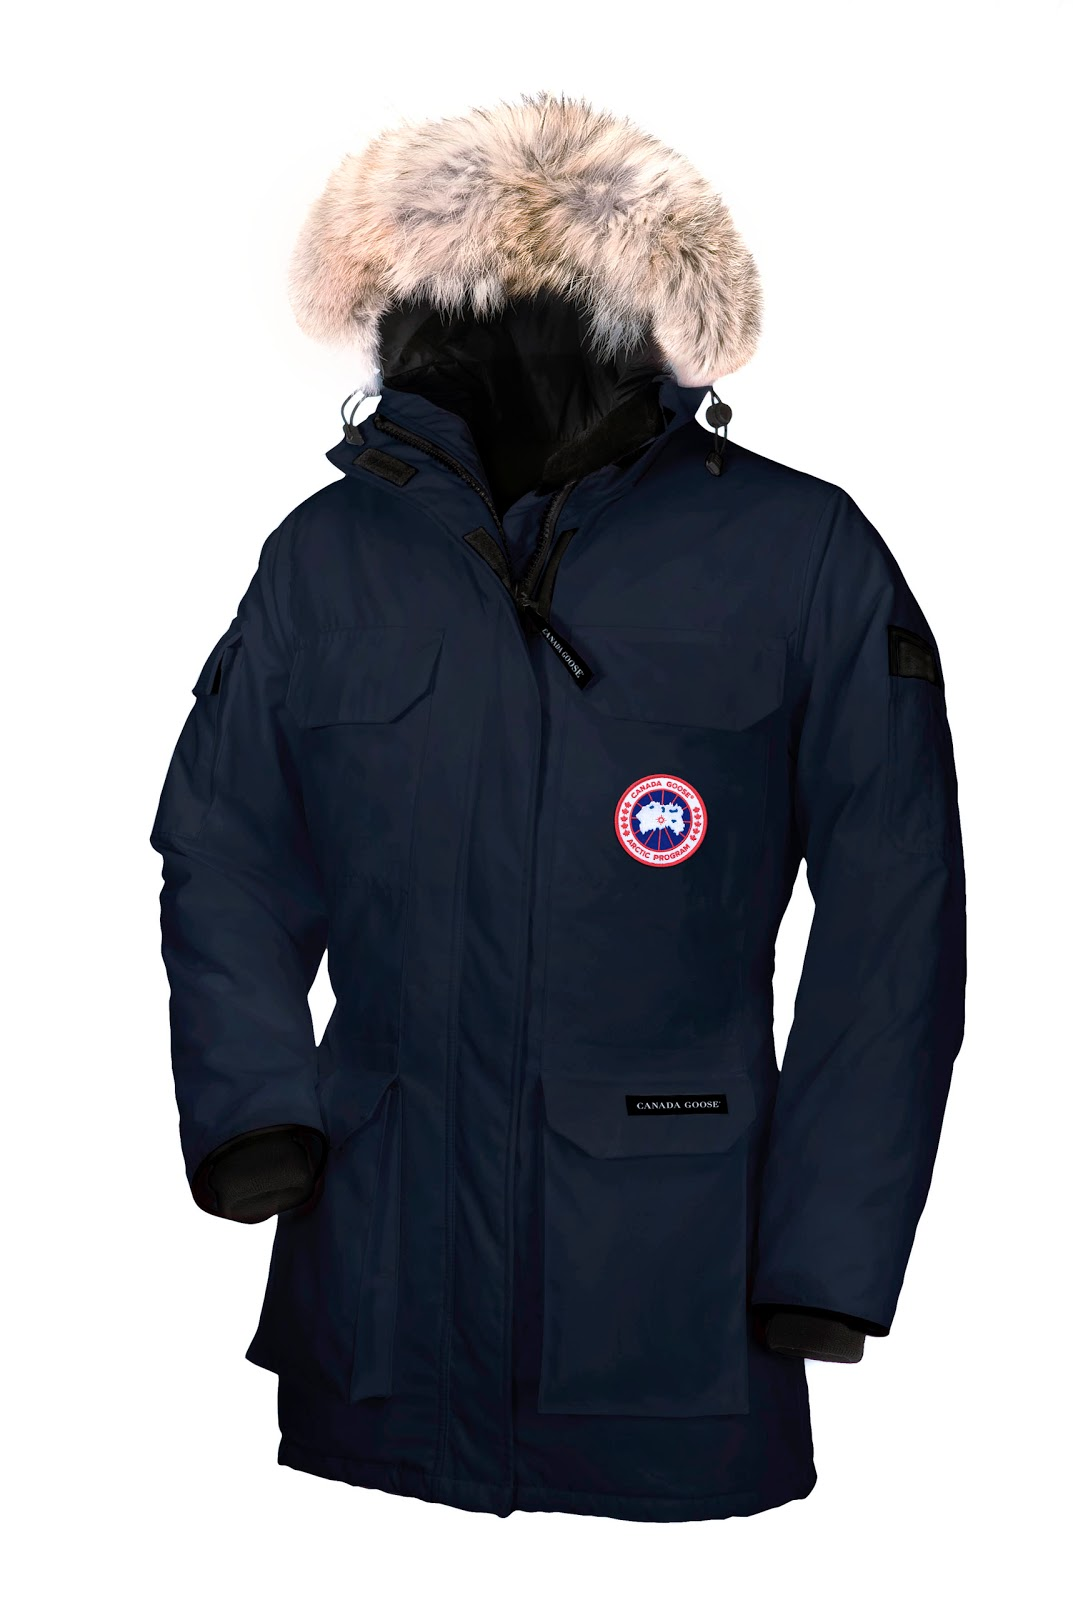 Canada Goose chateau parka replica official - 14 oz. berlin blog: CANADA GOOSE >>> BRAVE THE ELEMENTS